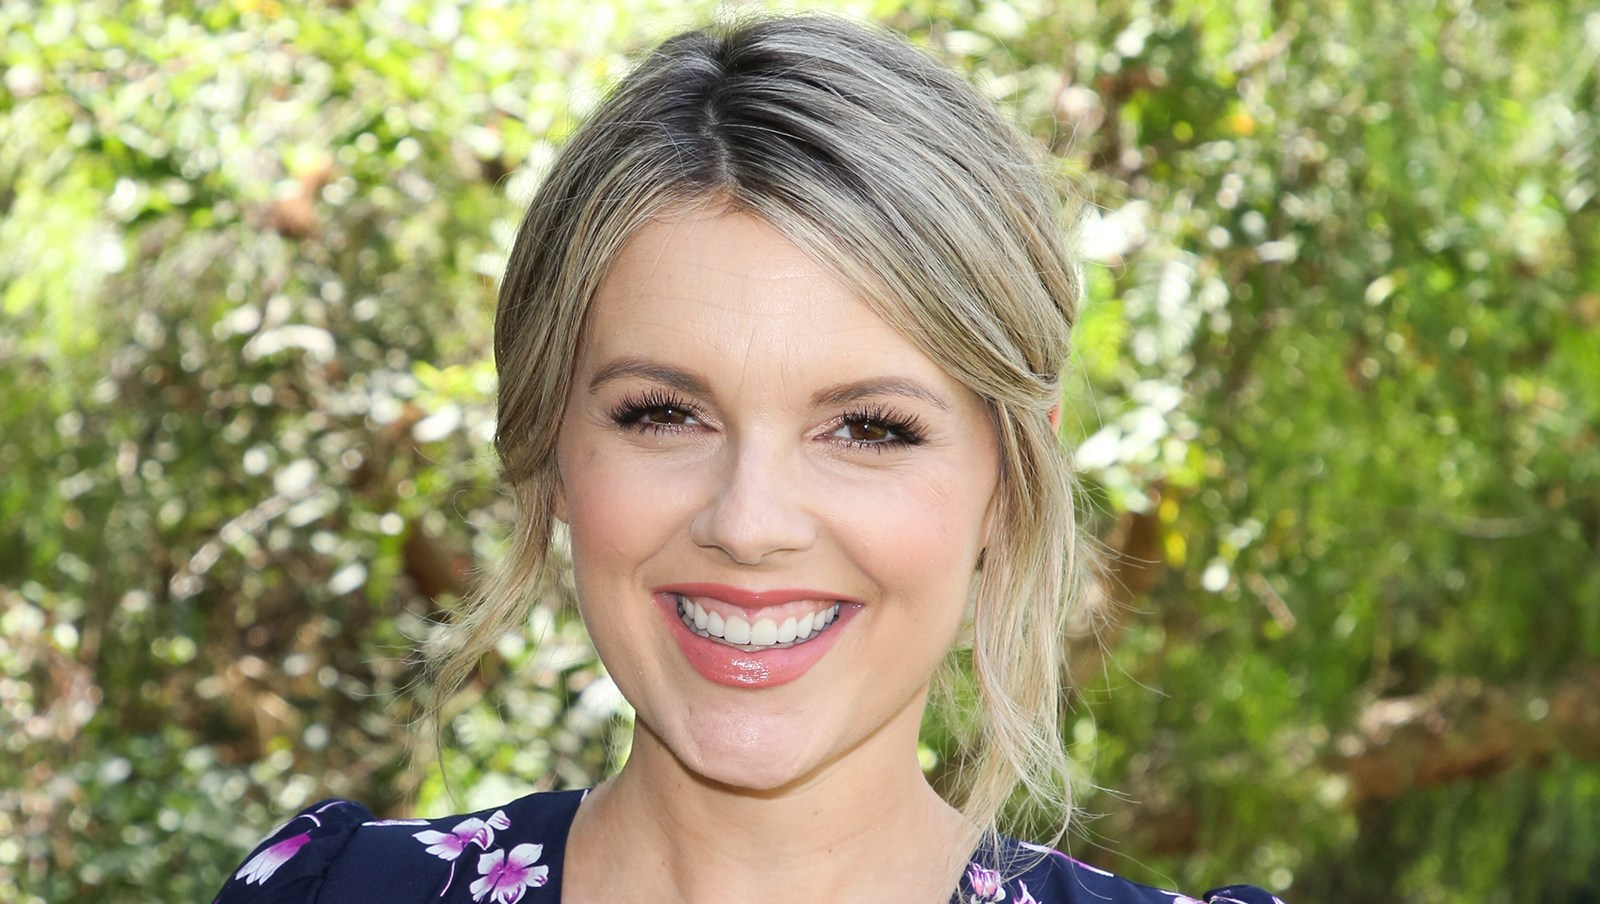 Ali Fedotowsky Just Made a very Honest Confession so Cue the Backlash